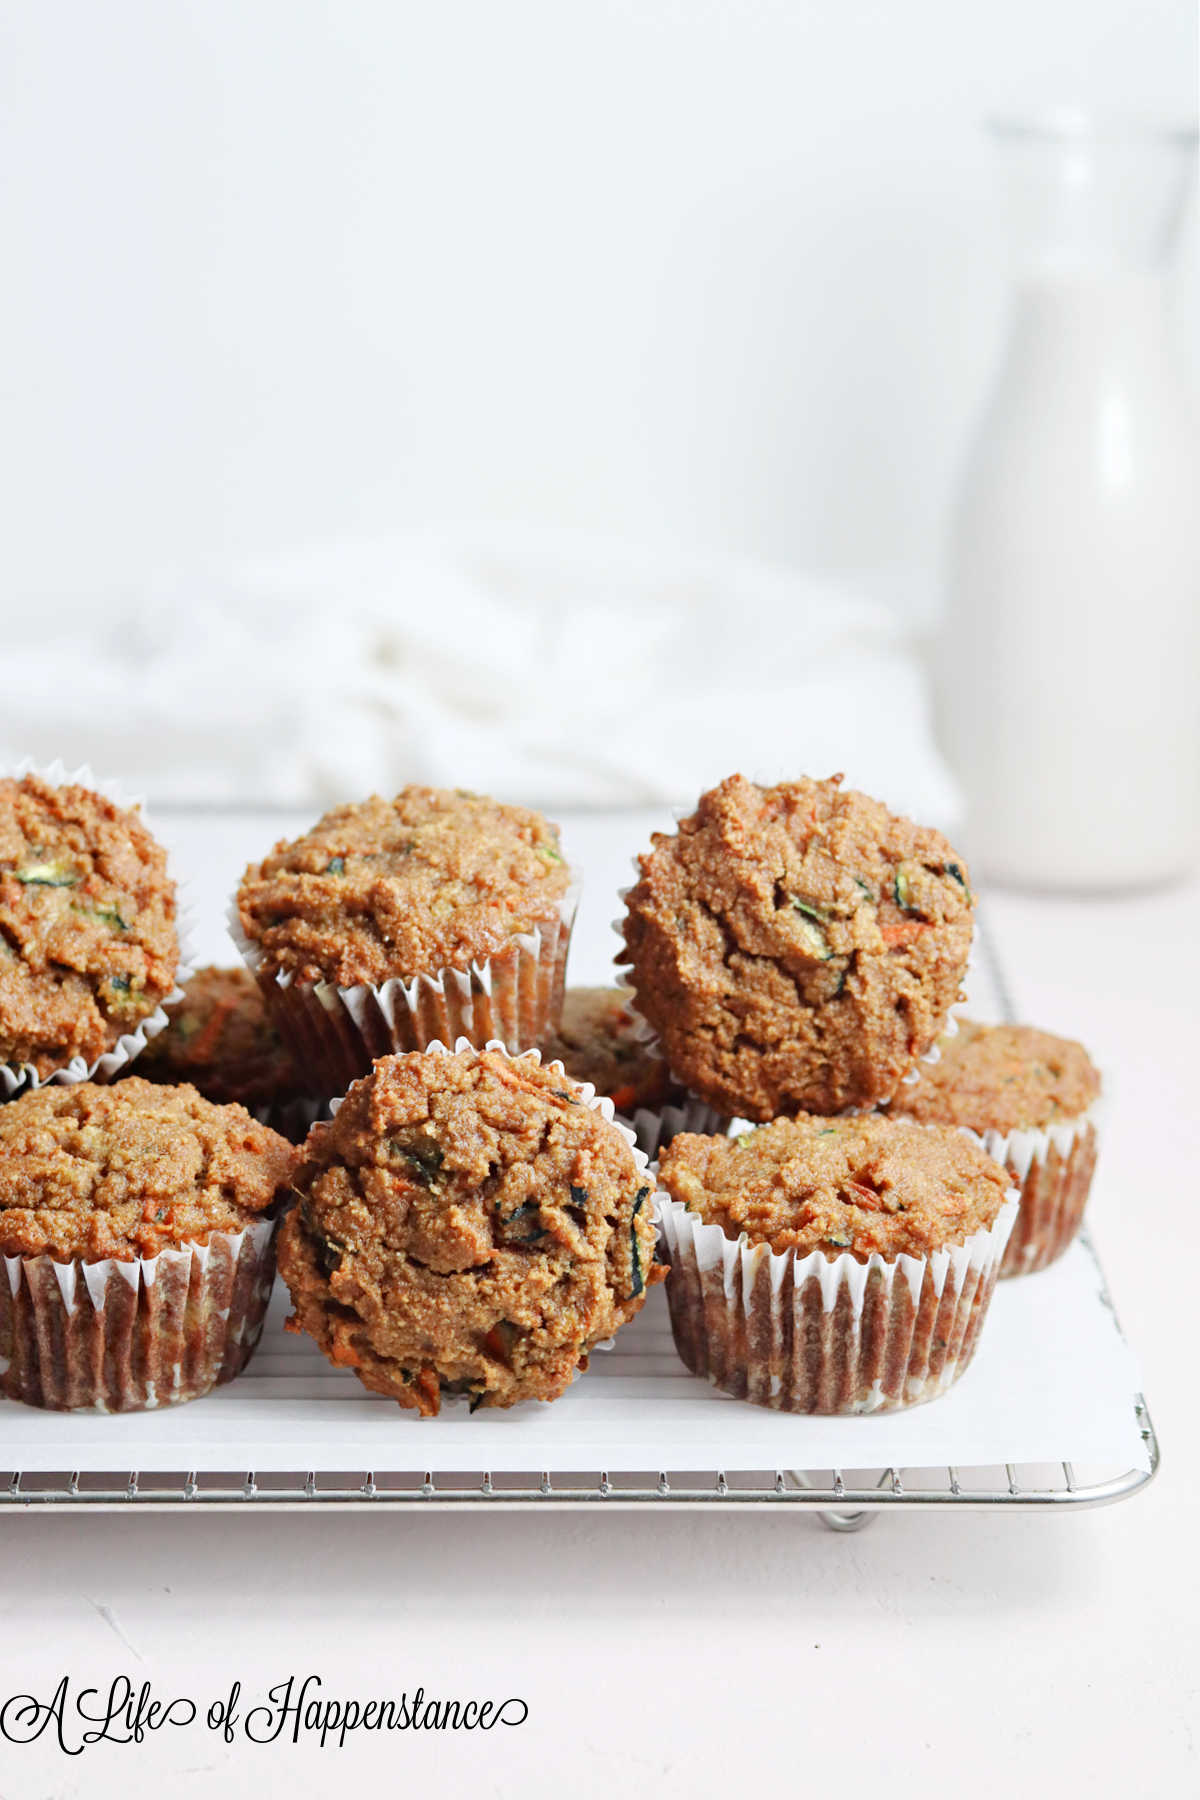 Muffins piled on a cooling rack with a white napkin and glass jar of cashew milk in the background.